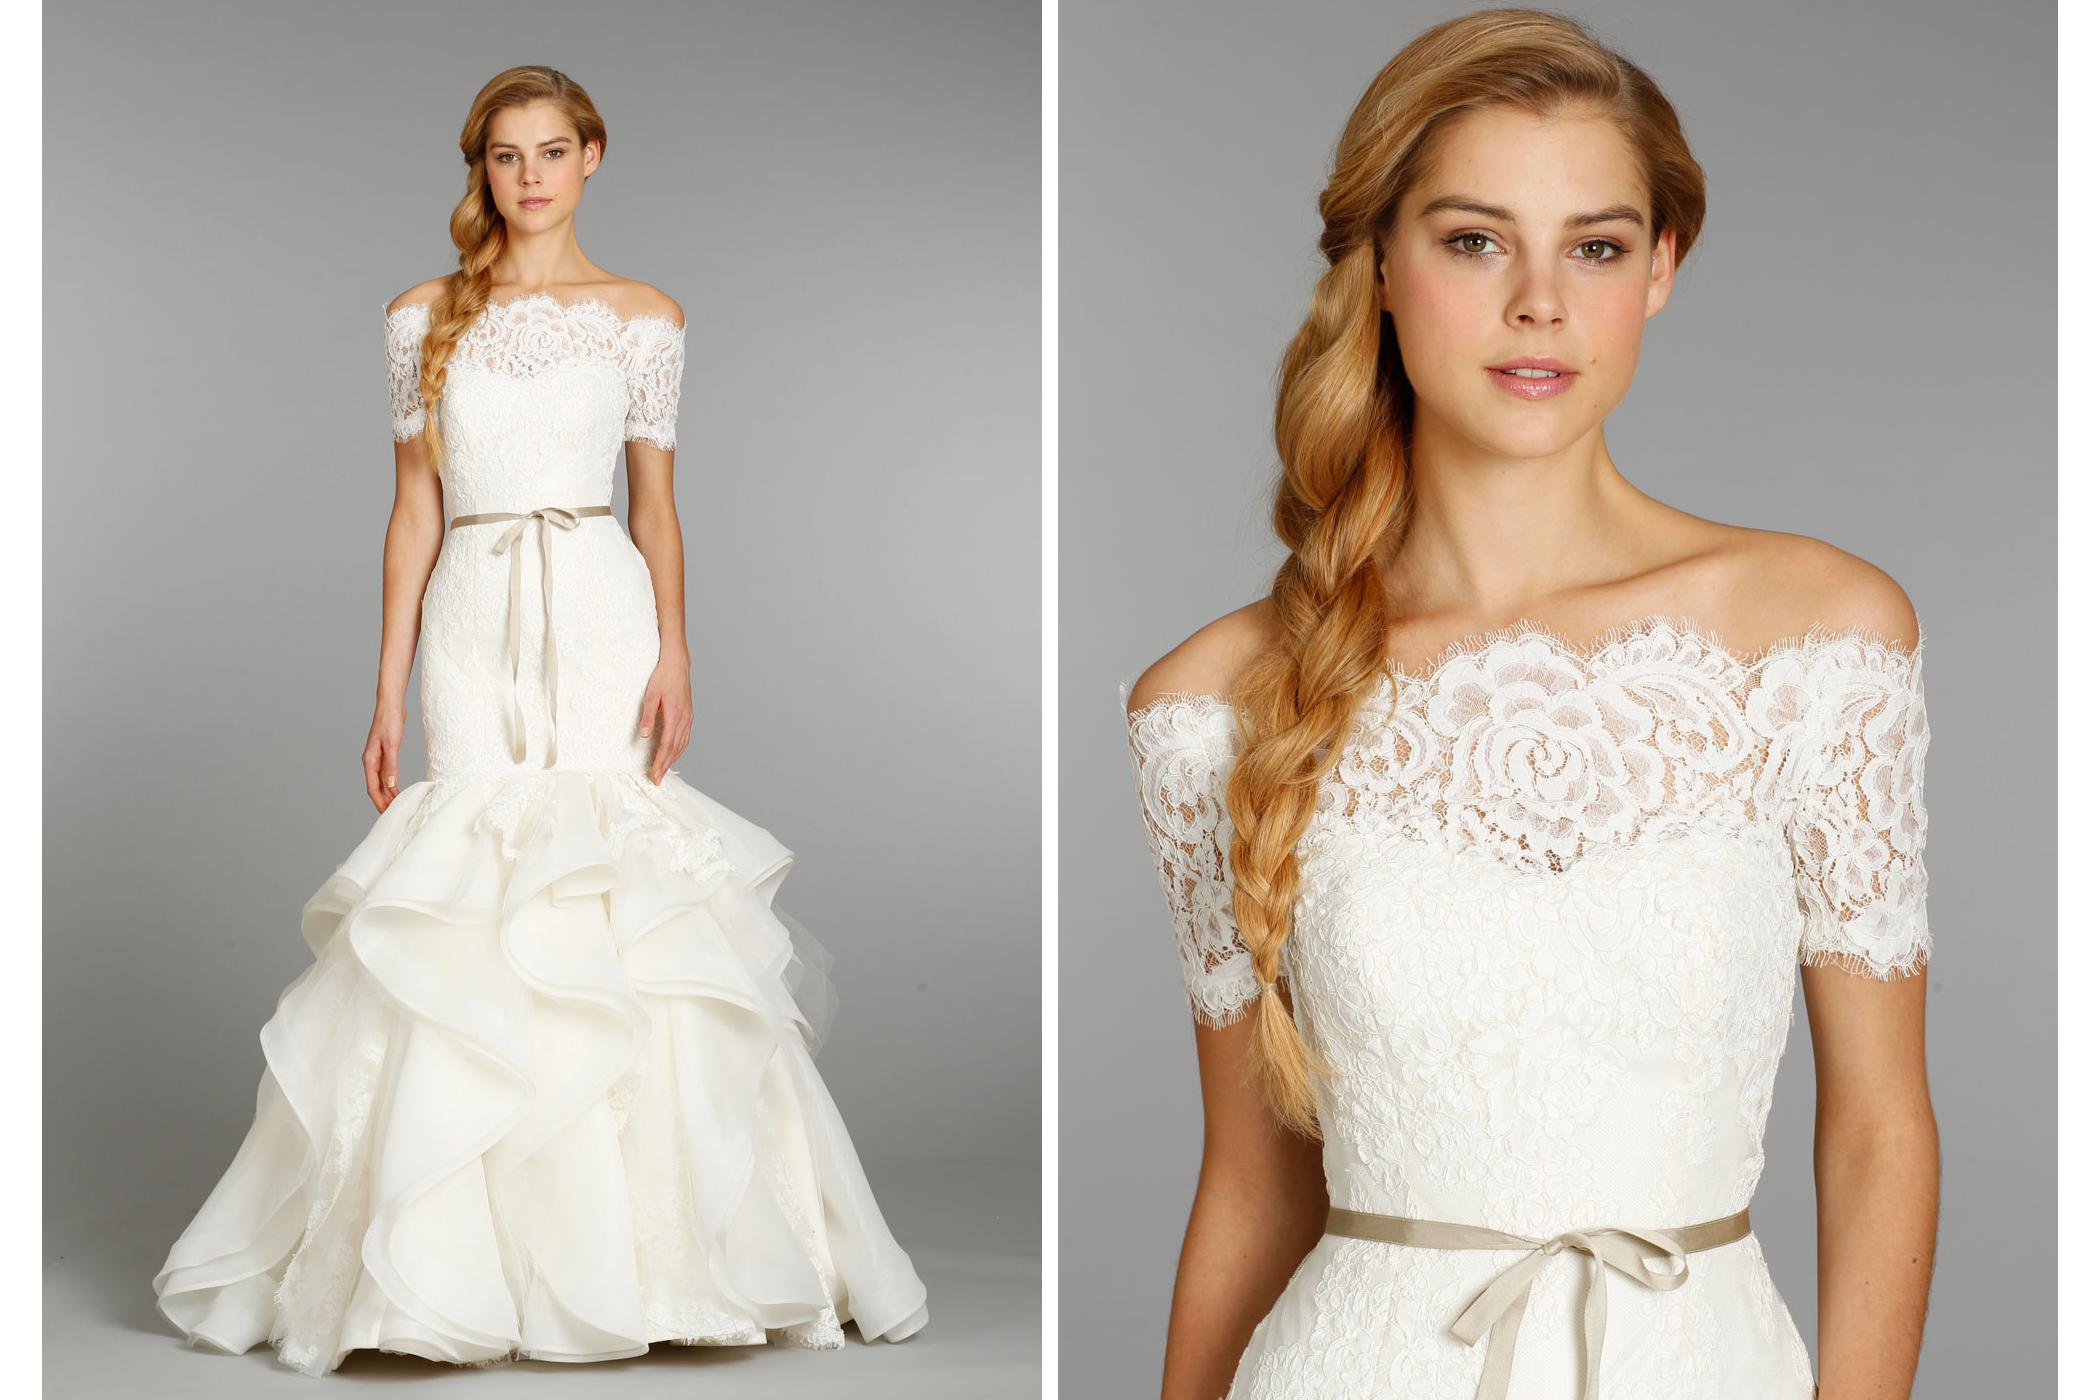 Hayley paige wedding dress fall 2013 bridal 6357 for Hayley paige wedding dress